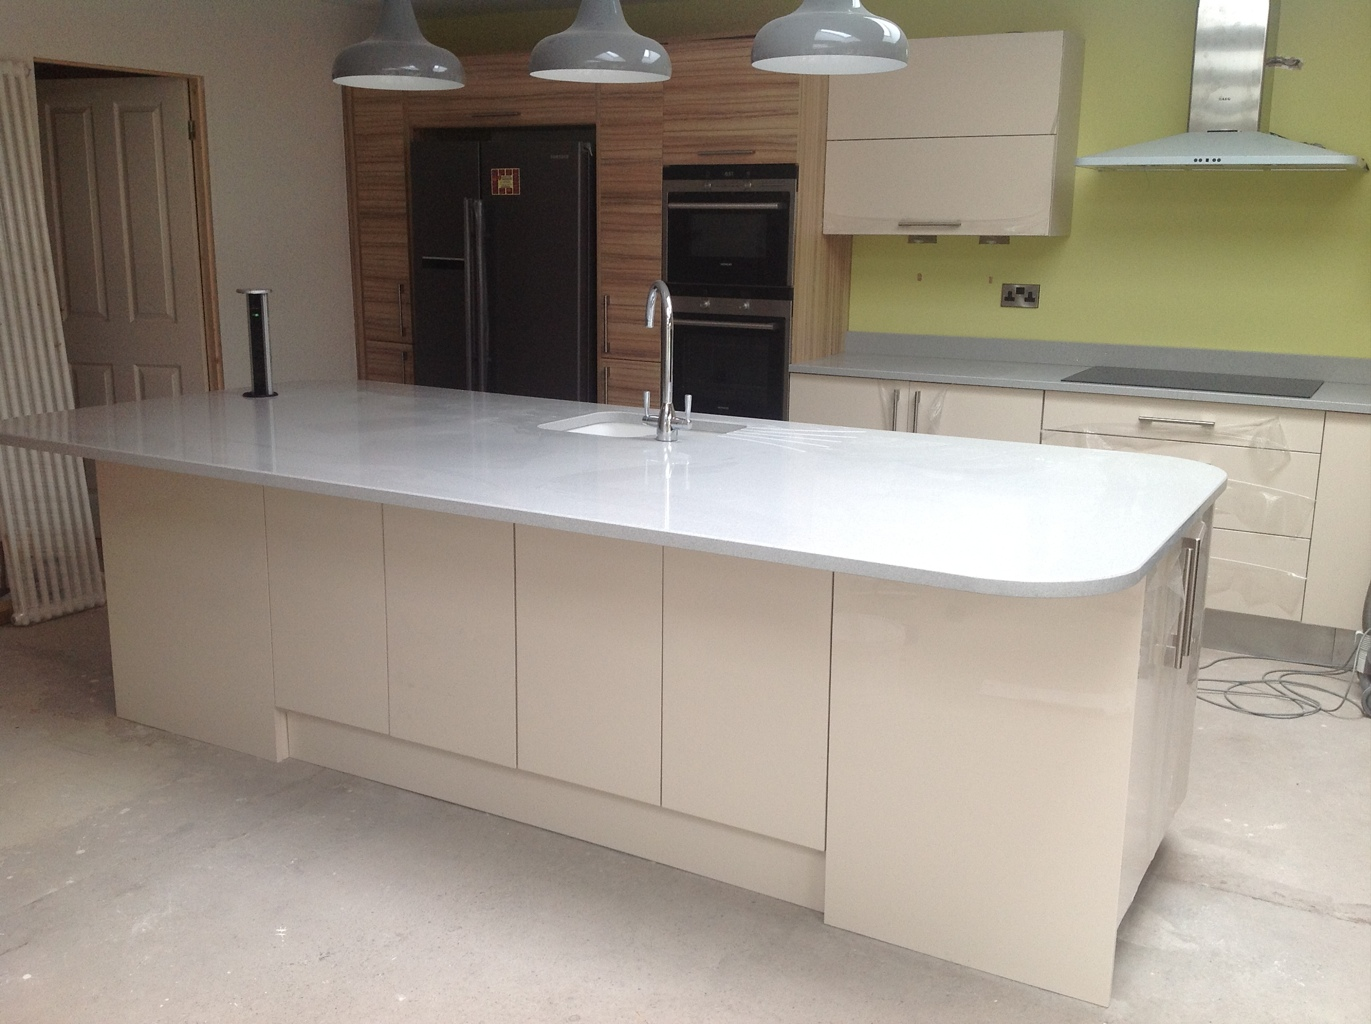 The Benefits of Choosing Silestone Worktops